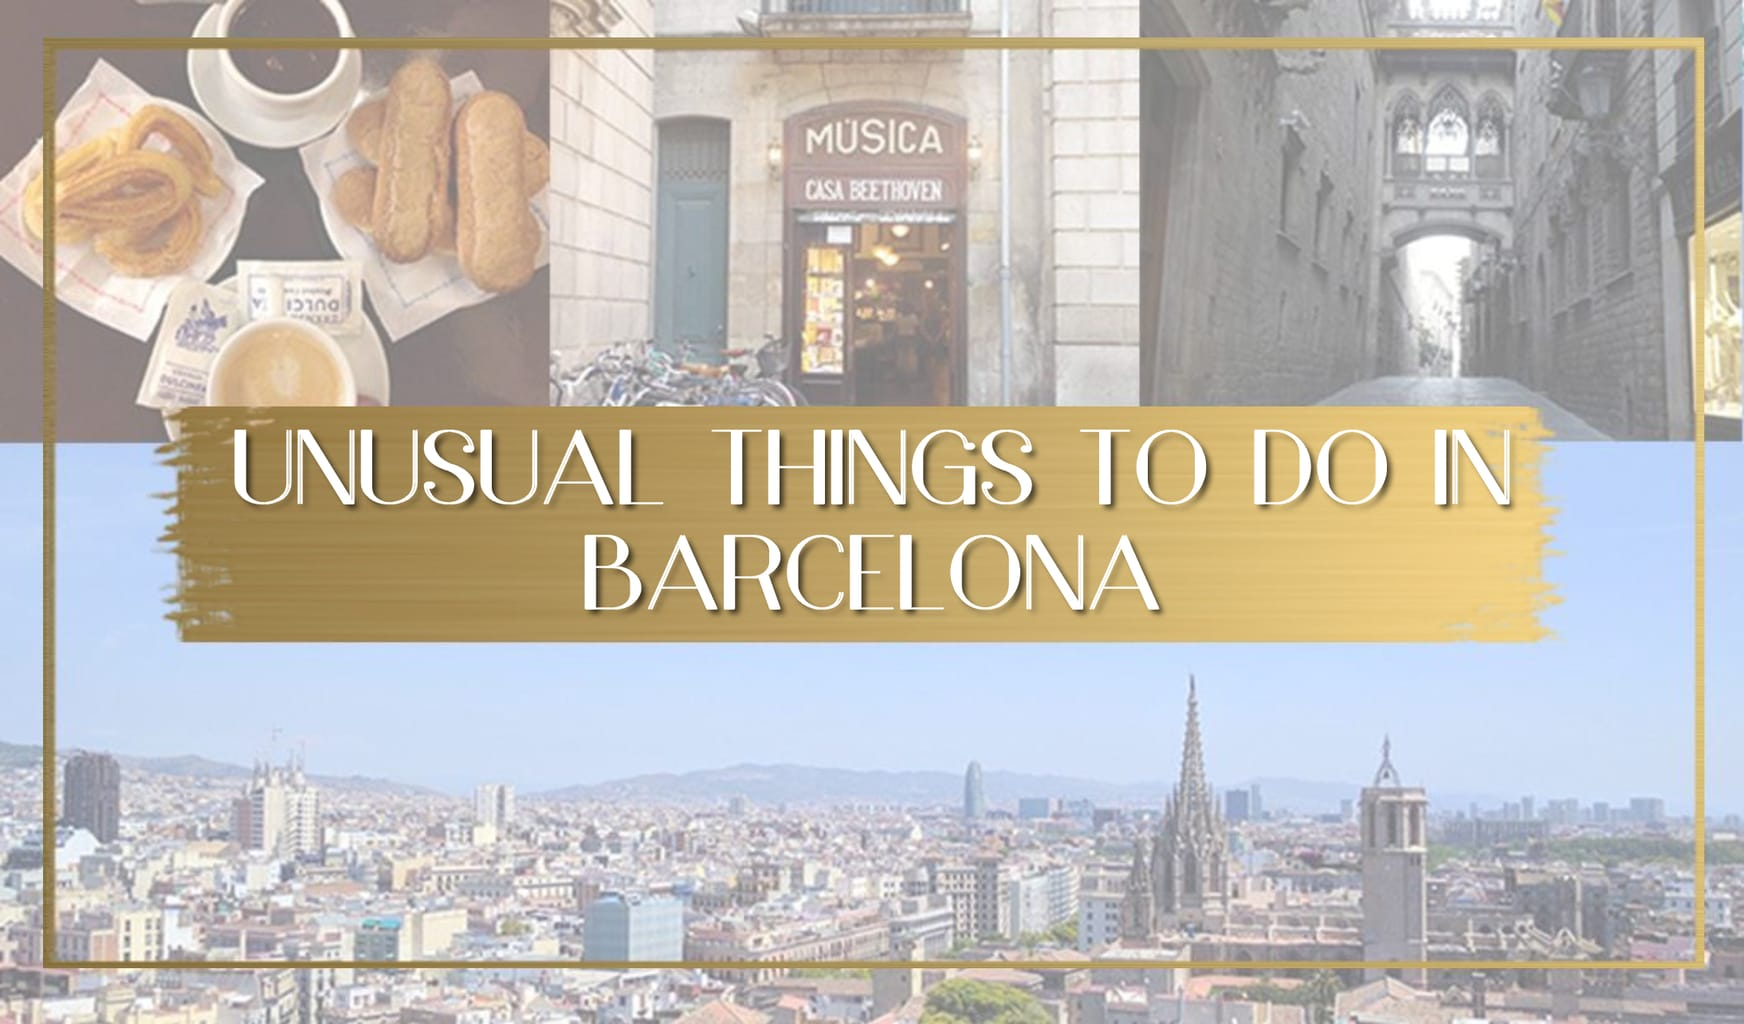 Unusual things to do in Barcelona main